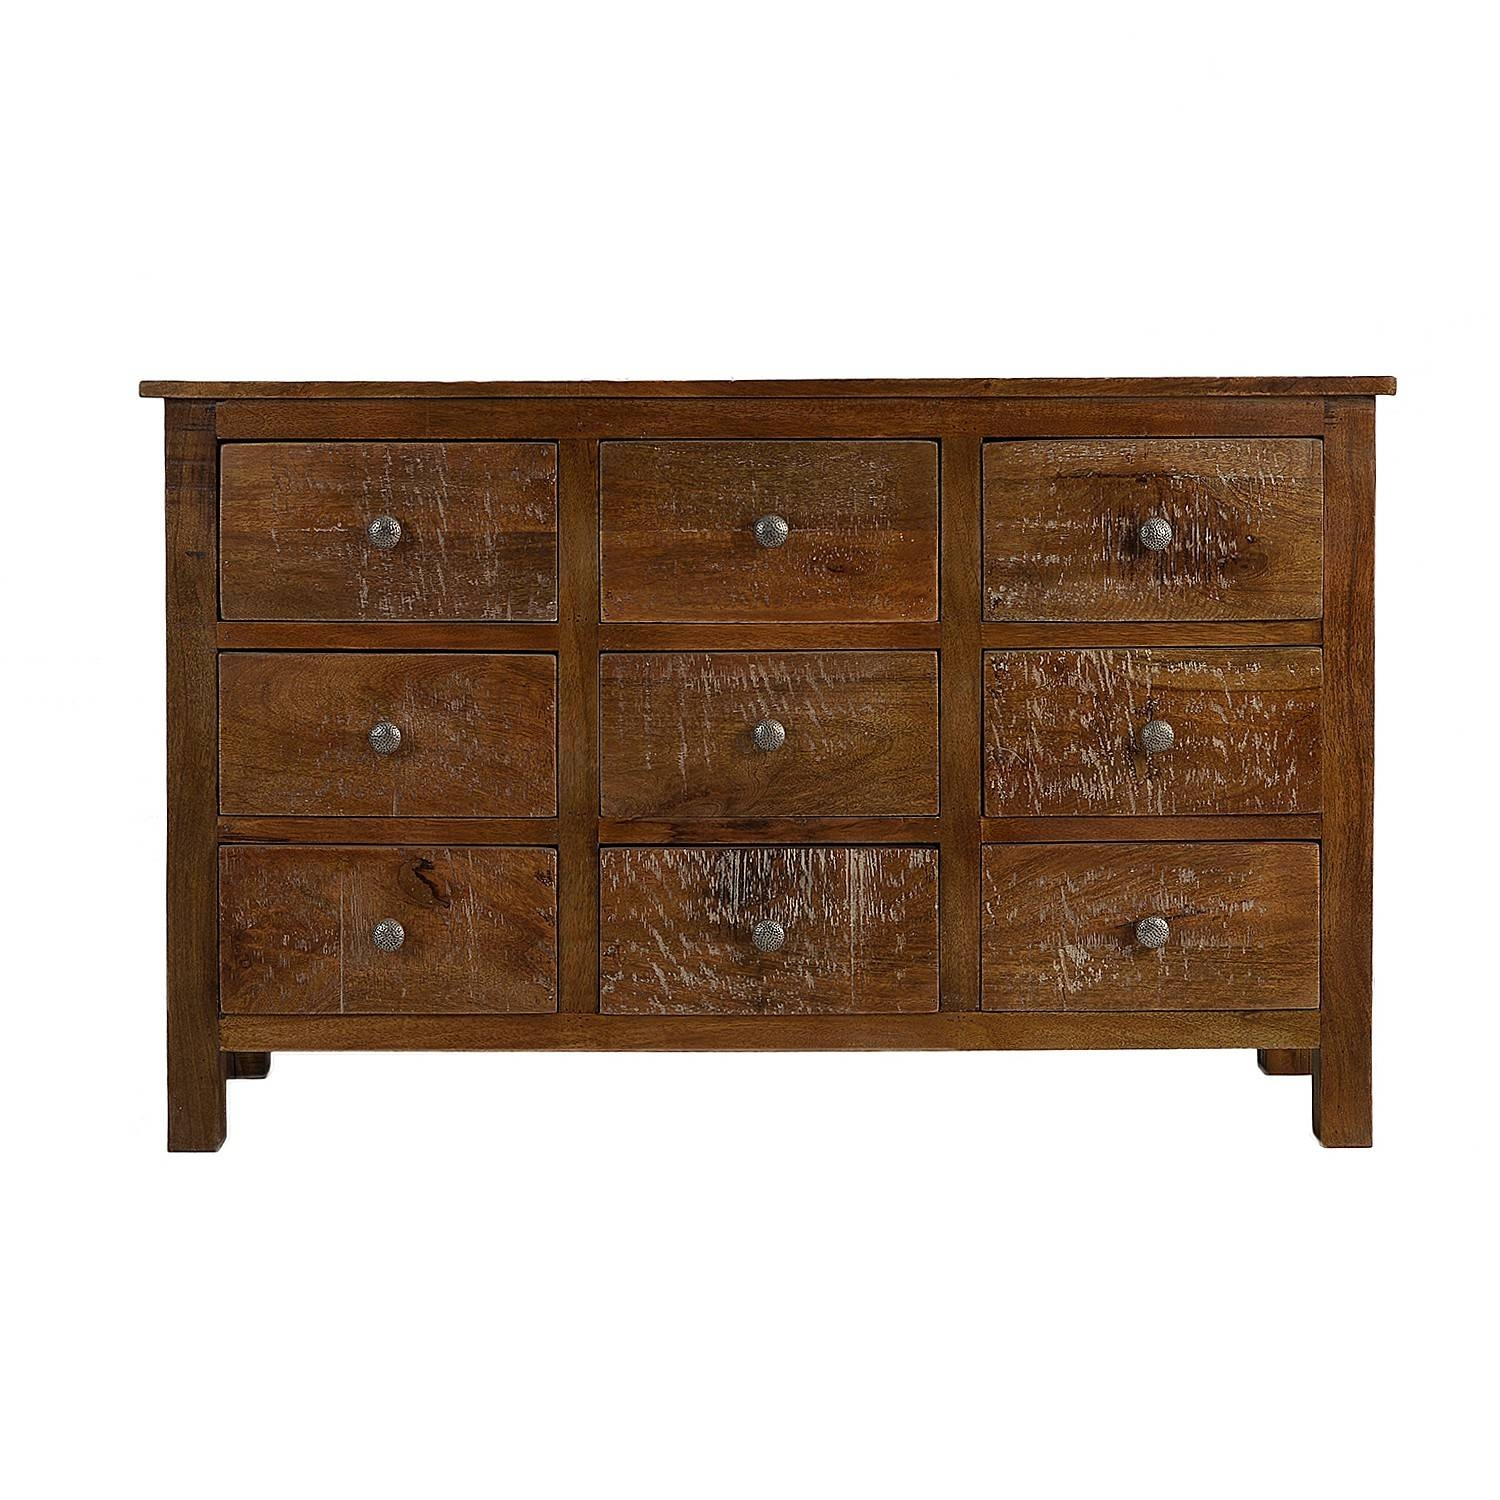 Multi Drawer Sideboard | The Yellow Door Store inside Multi Drawer Sideboards (Image 20 of 30)